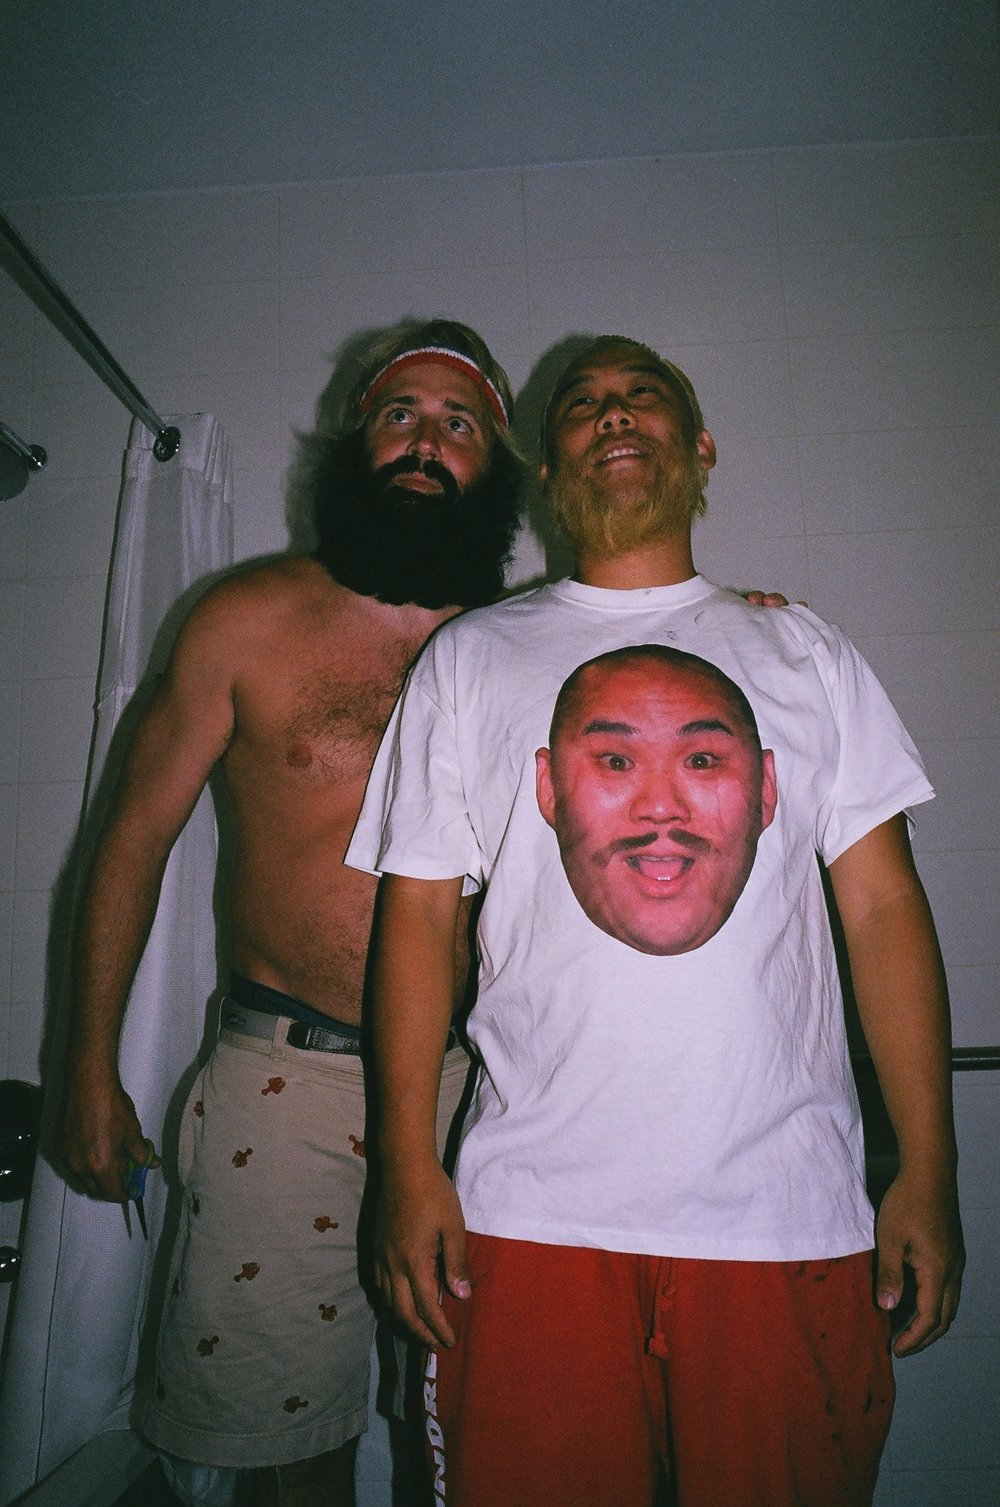 Critter x David Choe Thumbs Up season 4 beard inversion